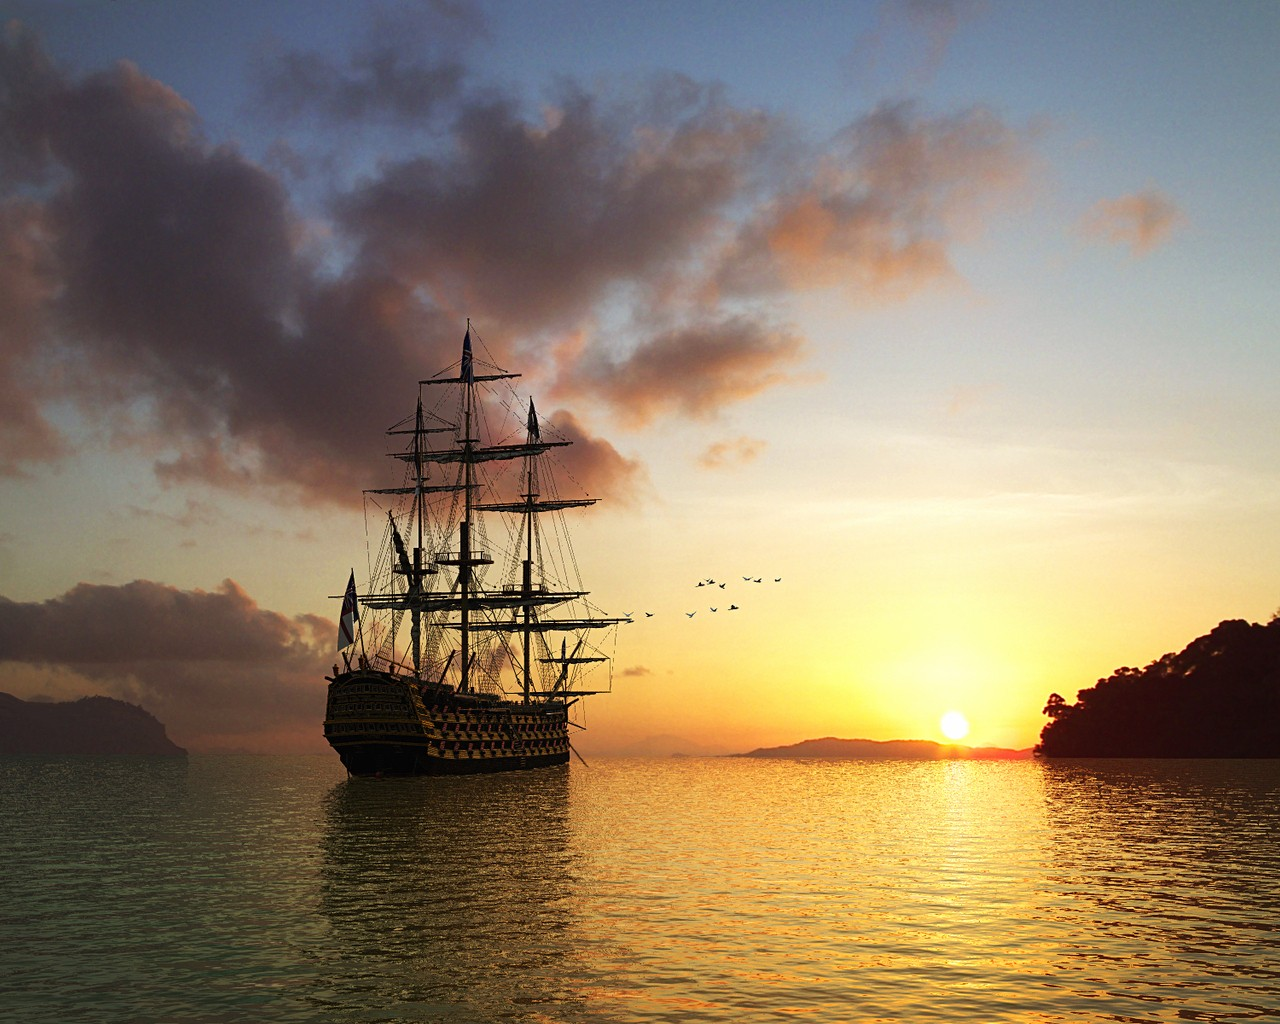 Sailing Ship at Sunrise